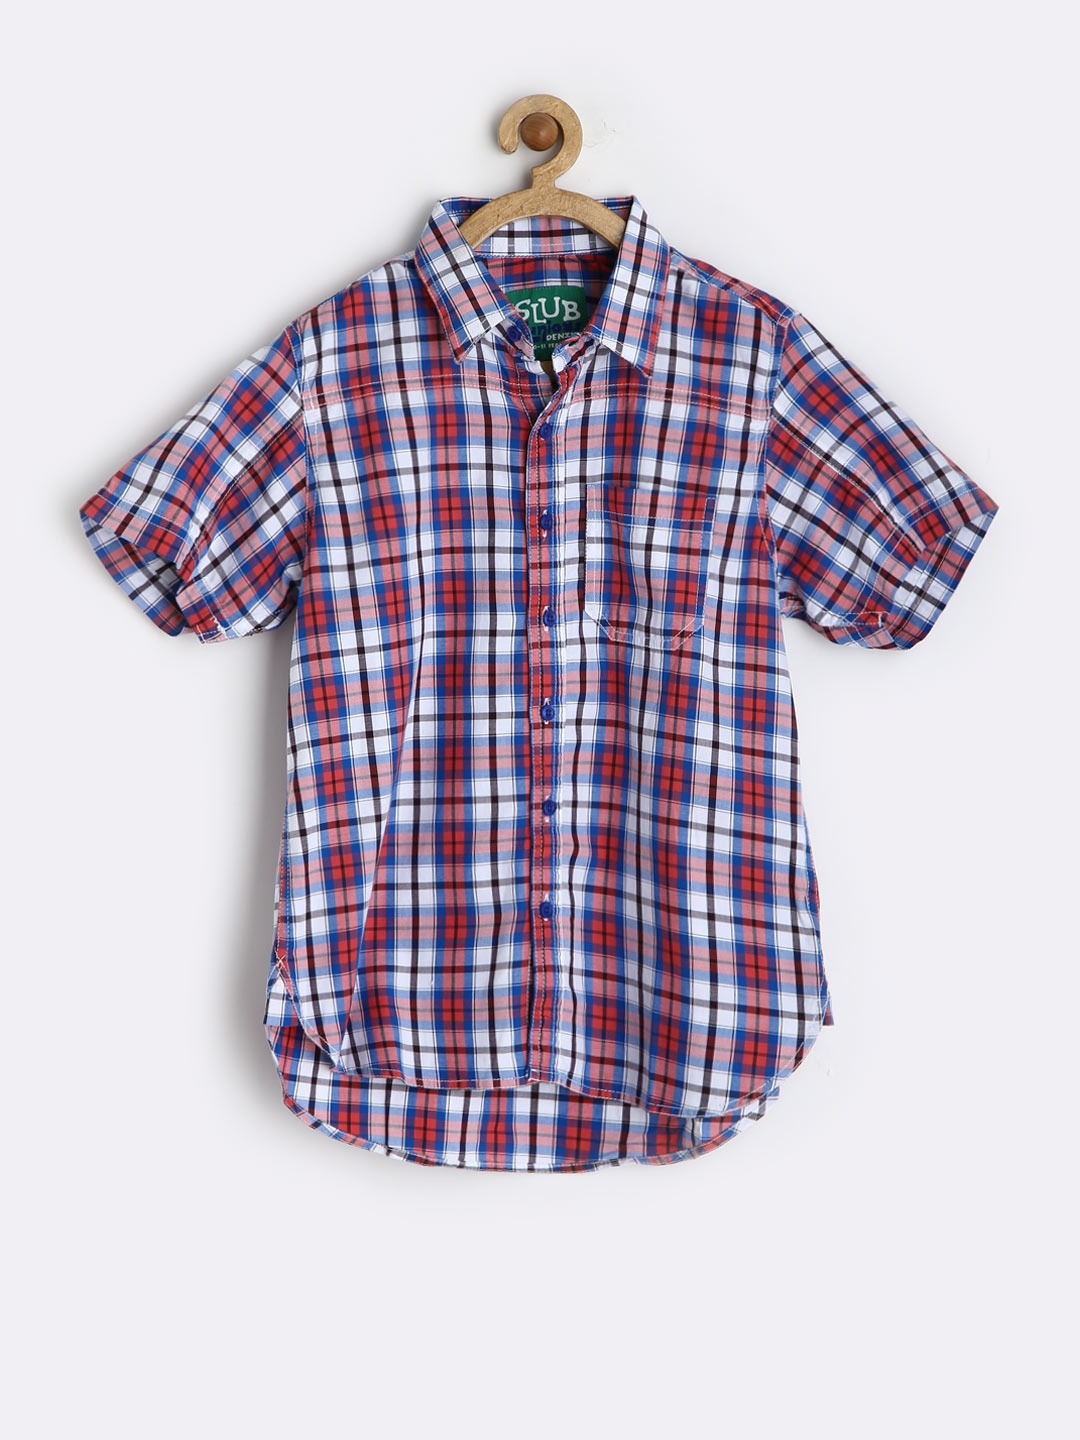 Boys' Shirts. This season our new collection of boys' shirts is so stylish, he'll love getting dressed. Adorned with cool checks and detailed prints, our shirts are crafted from the the finest cotton that's as easy to wear as it is to wash.